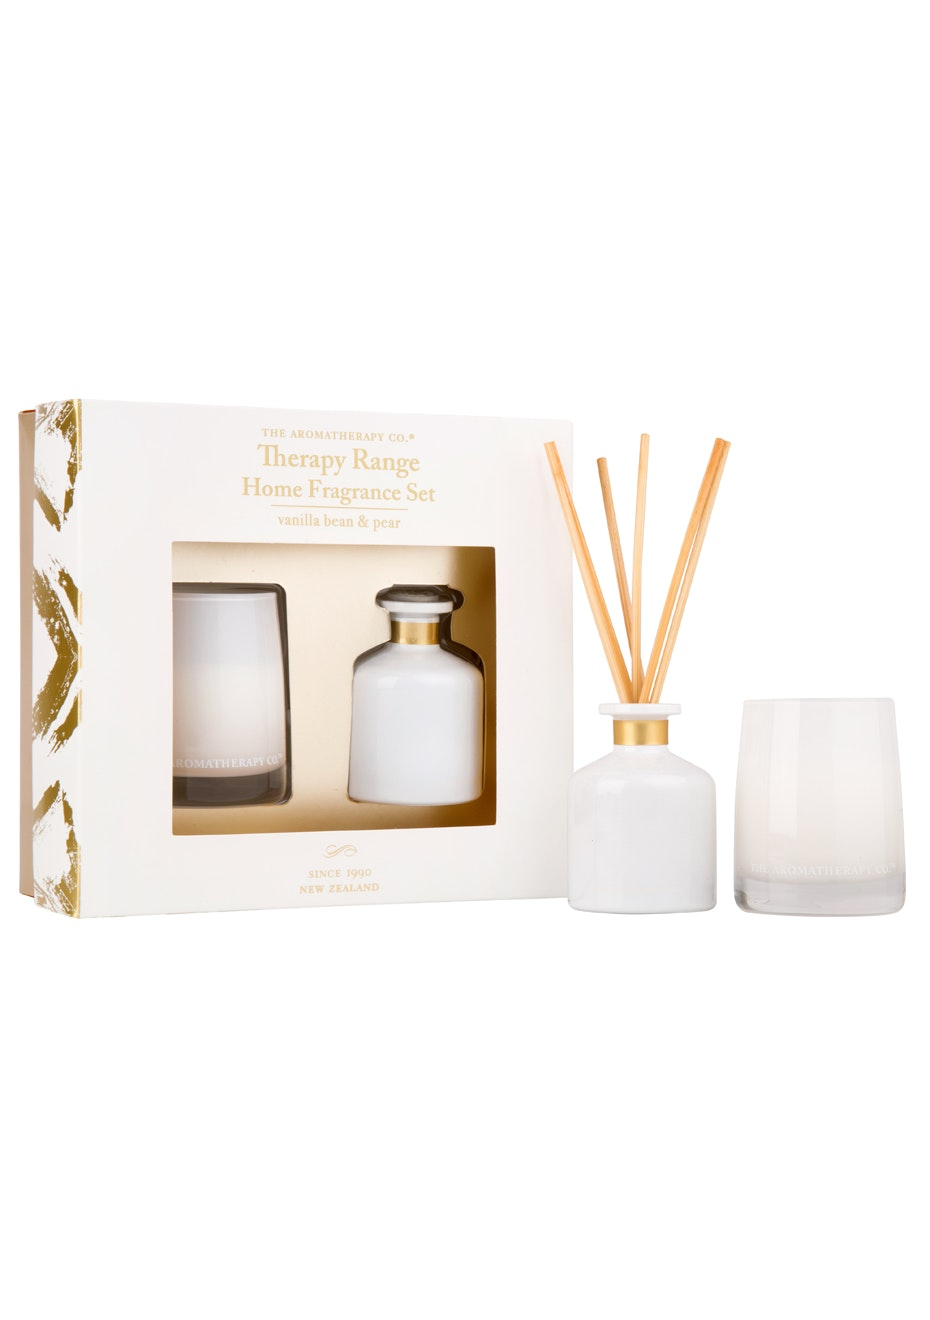 The Aromatherapy Co.  Therapy Limited Edition - Home Fragrance Diffuser and Candle Set  - Vanillla Bean & Pear